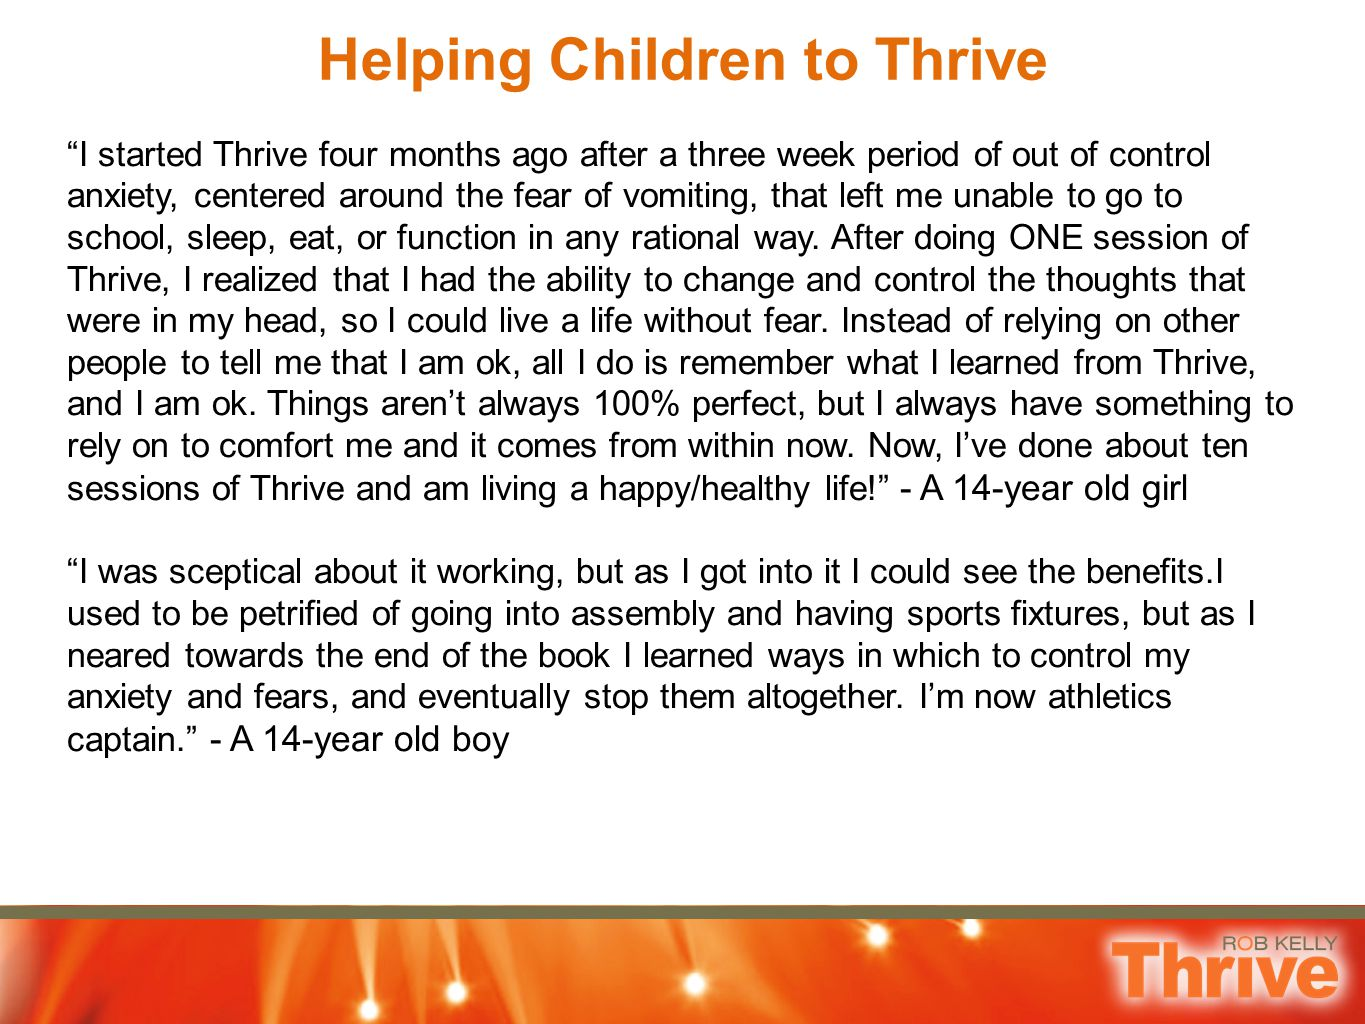 Helping Children to Thrive I started Thrive four months ago after a three week period of out of control anxiety, centered around the fear of vomiting, that left me unable to go to school, sleep, eat, or function in any rational way.